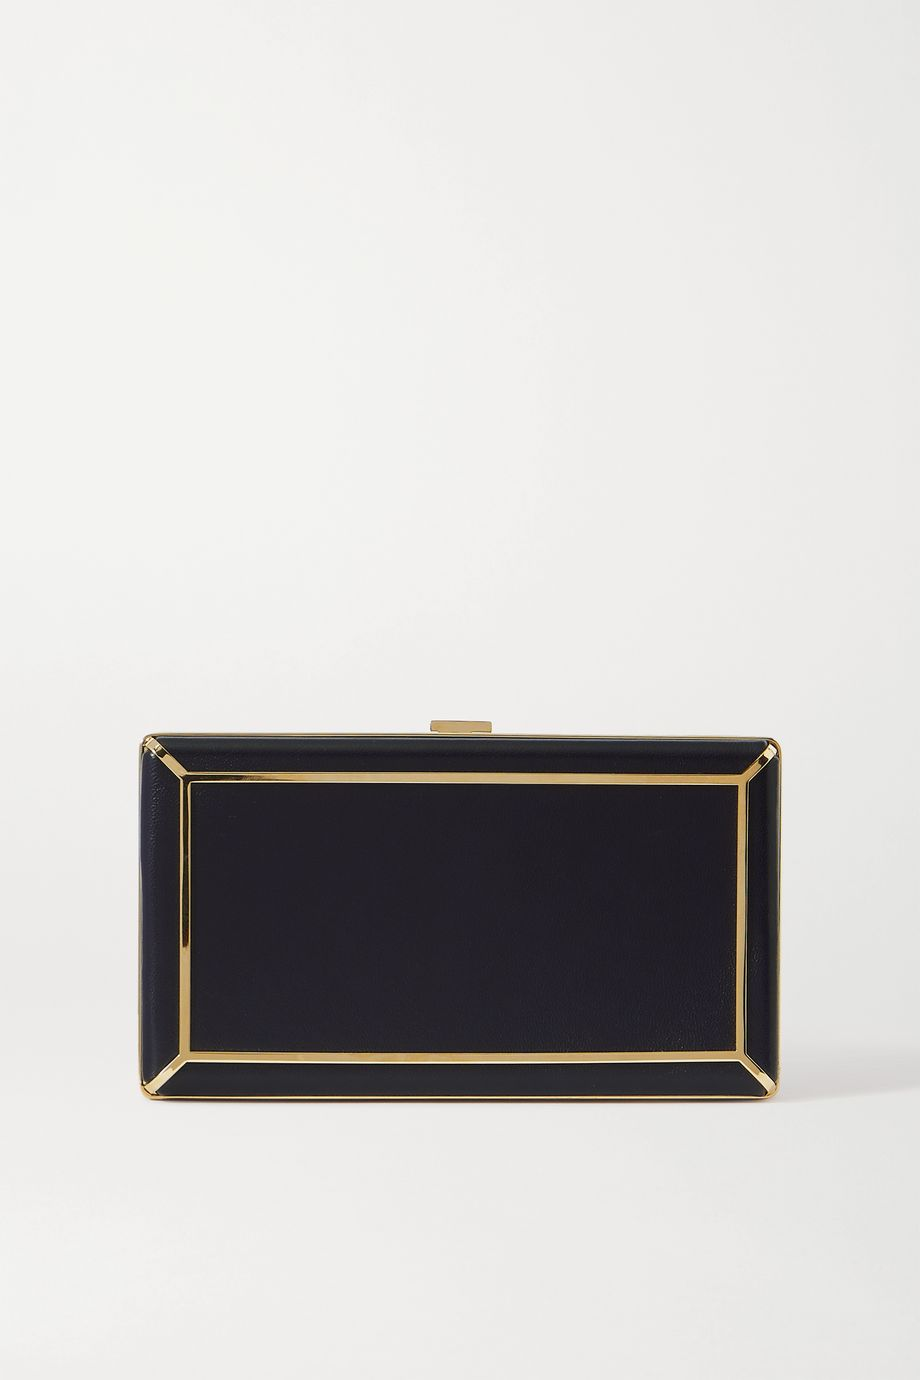 Gabriela Hearst Callas leather clutch